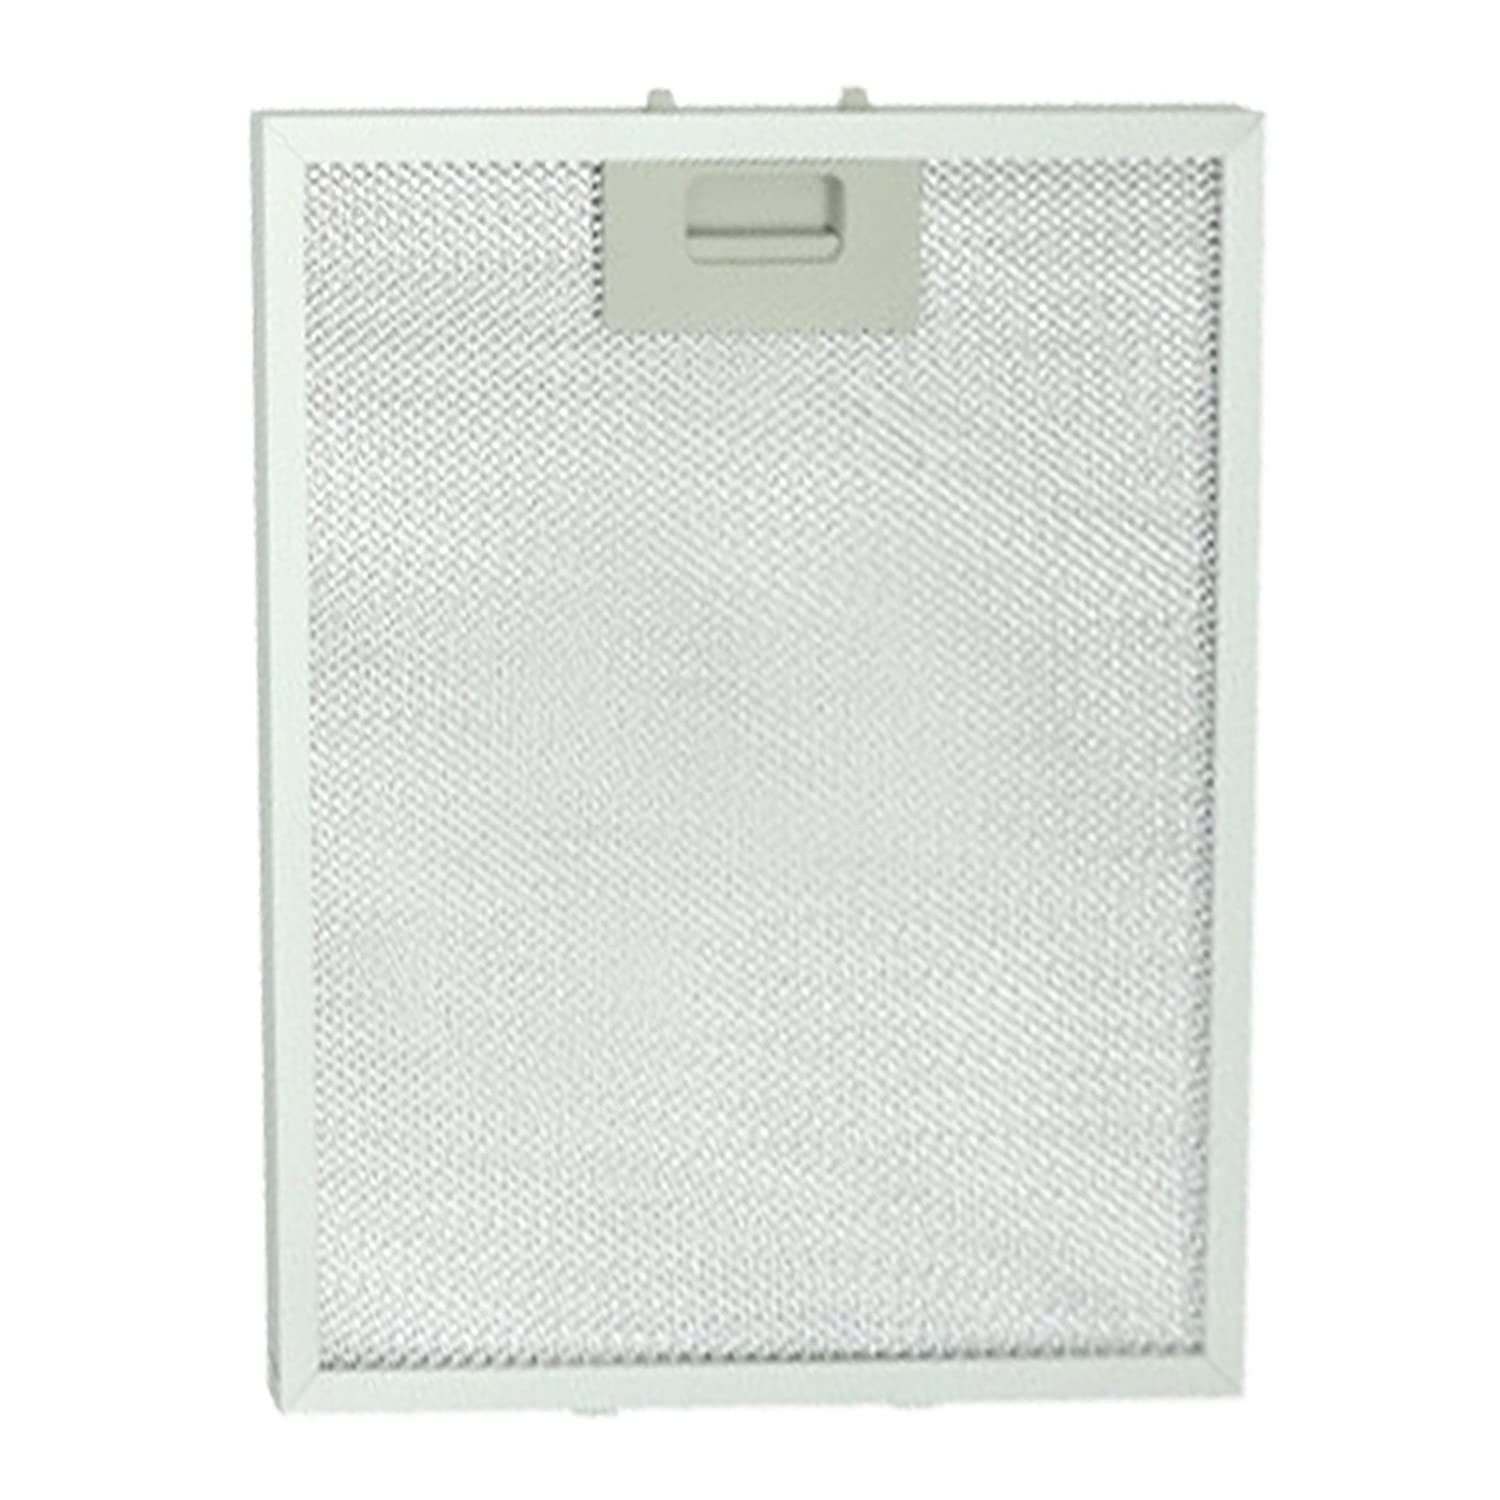 SPARES2GO Vent Extractor Aluminium Mesh Filter for Creda Oven Cooker Hood